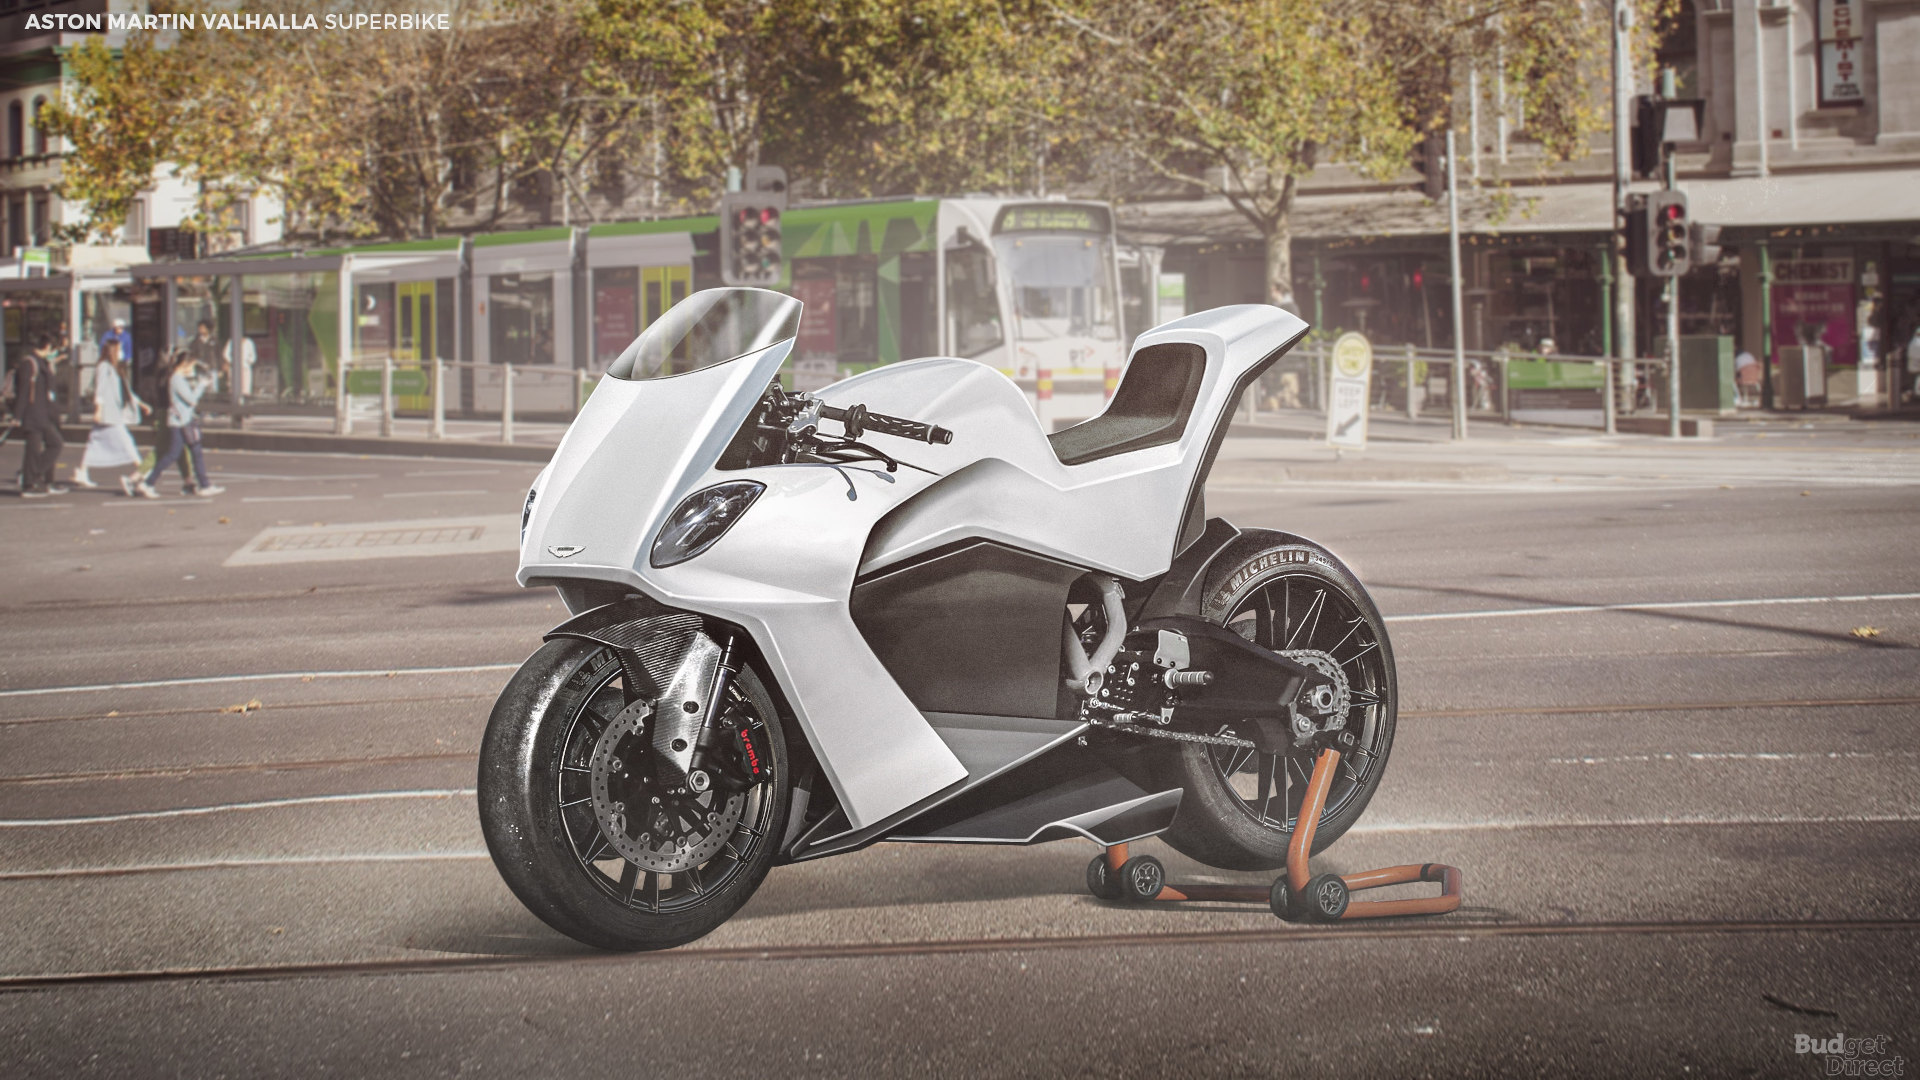 What if supercar brands made superbikes? Here's what Ason Martin Valhalla would look like